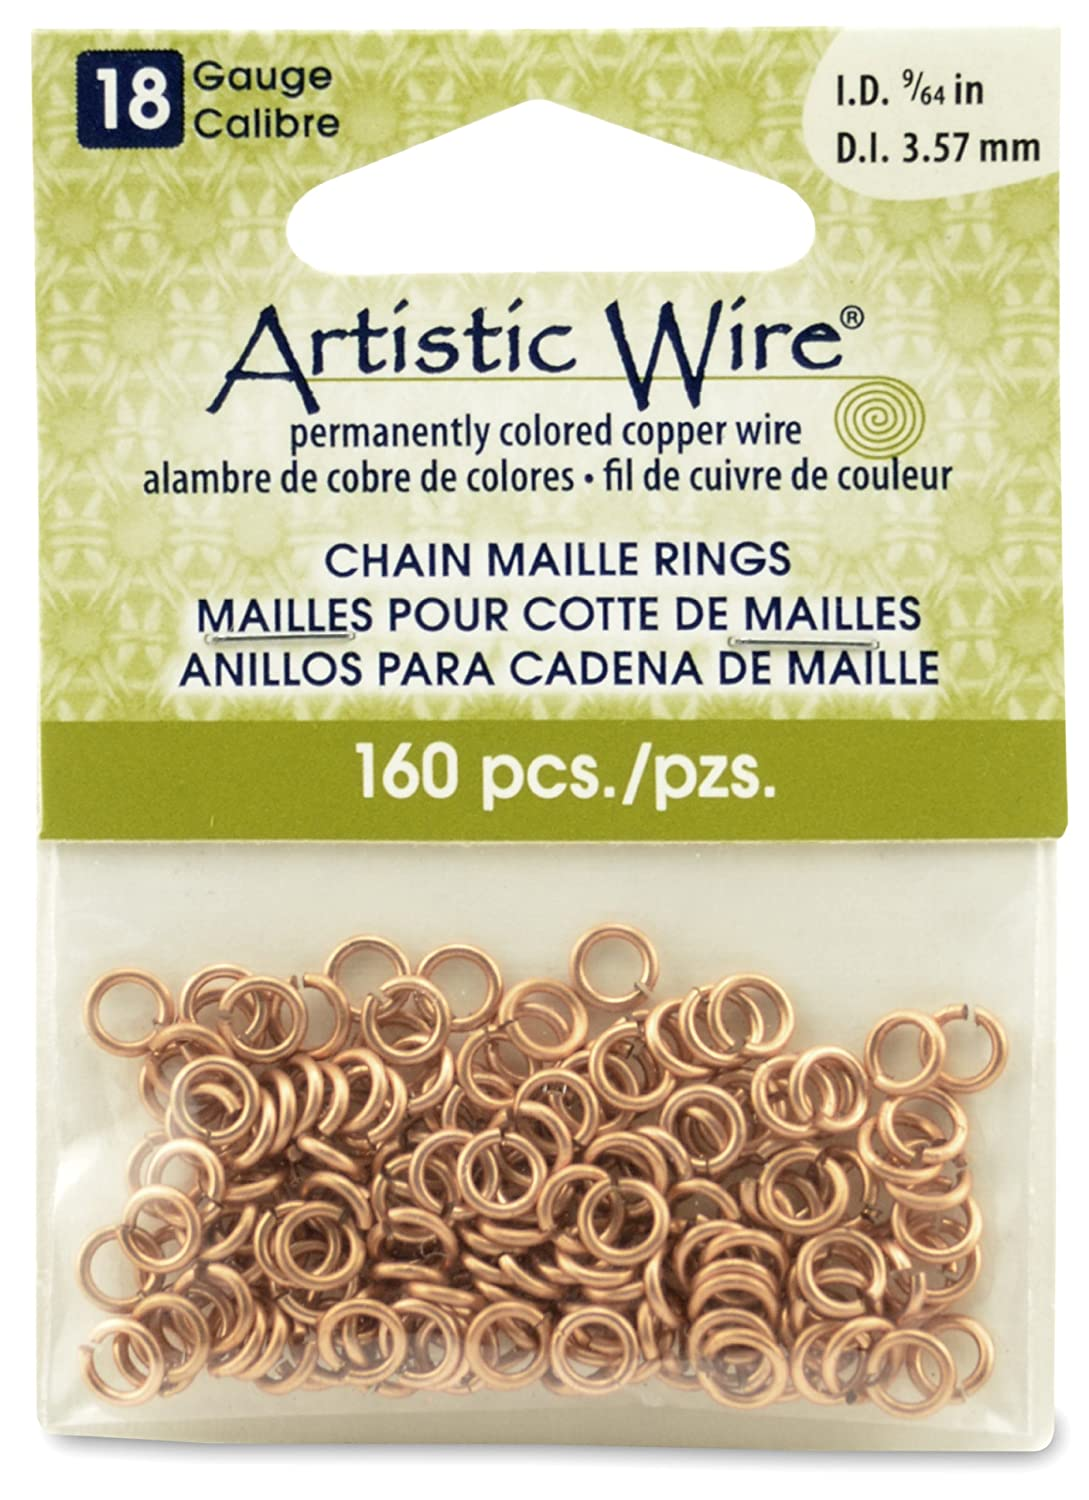 Artistic Wire 18-Gauge Natural Chain Maille Rings, 9/64-Inch Diameter,160-Pieces